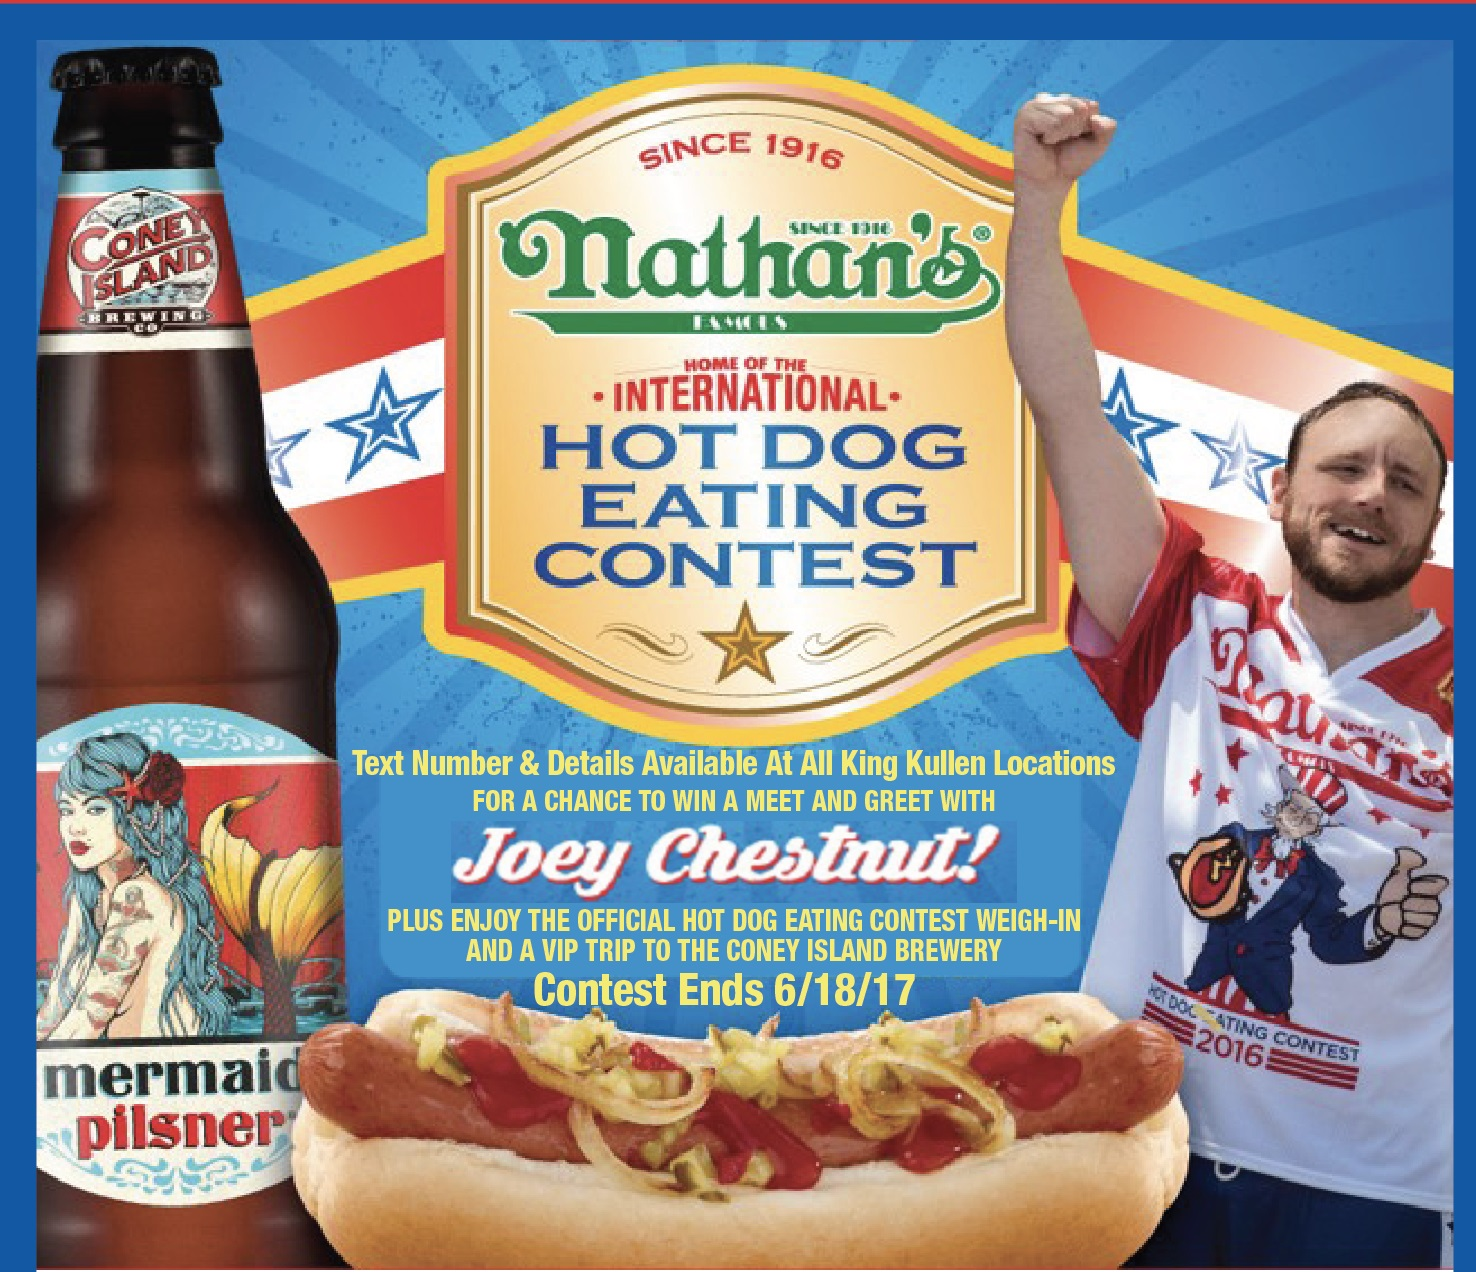 Win A Meet Greet With Joey Chestnut And Vip Trip To The Coney